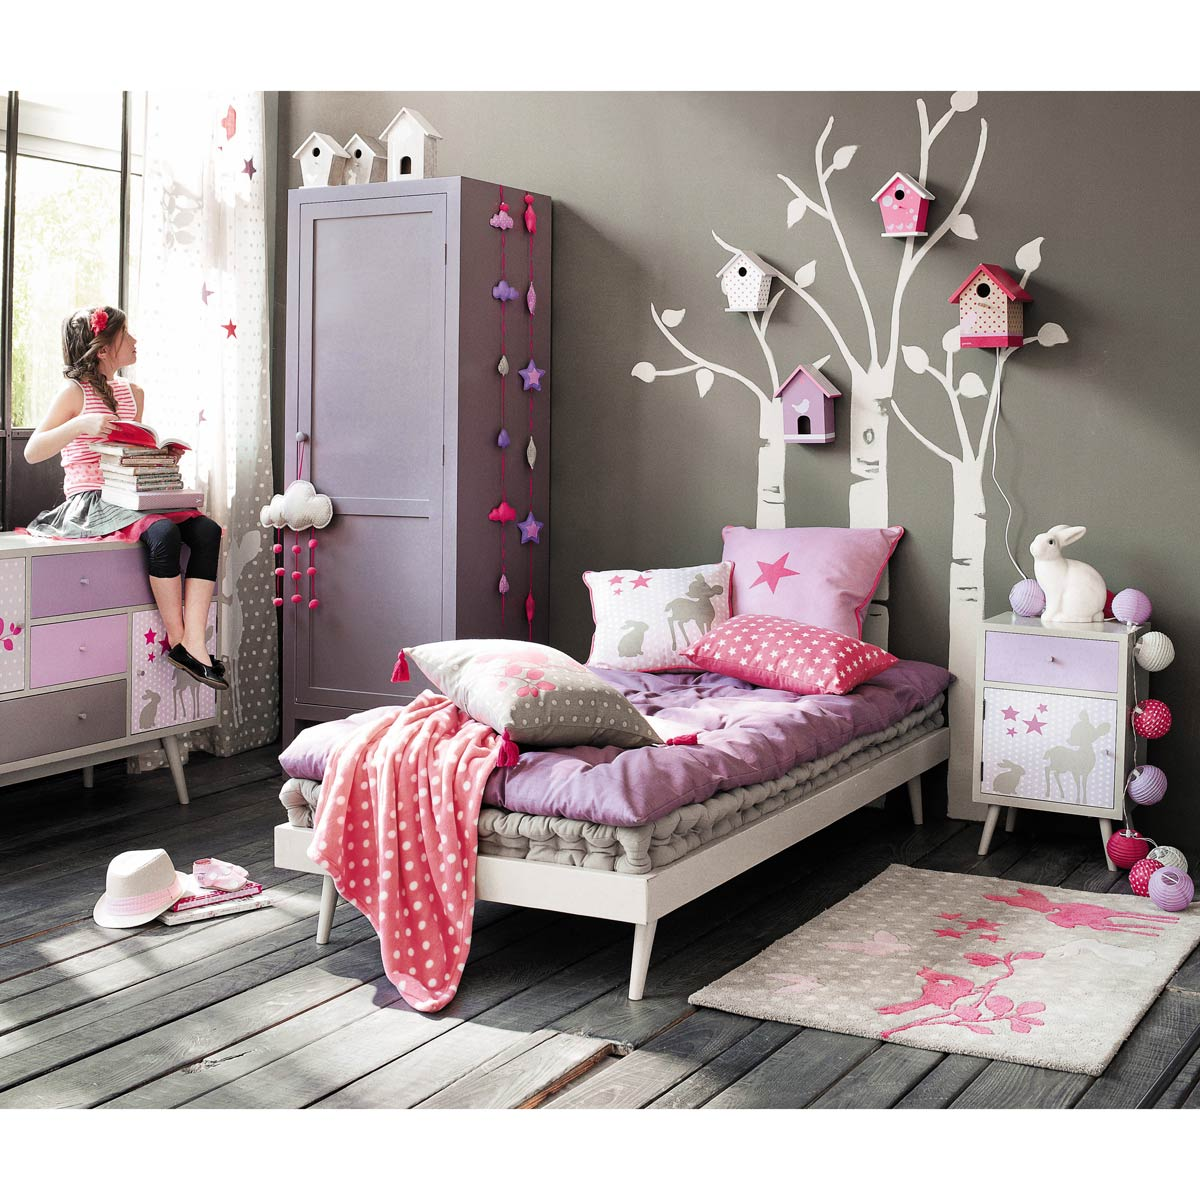 maison du monde chambre a coucher. Black Bedroom Furniture Sets. Home Design Ideas